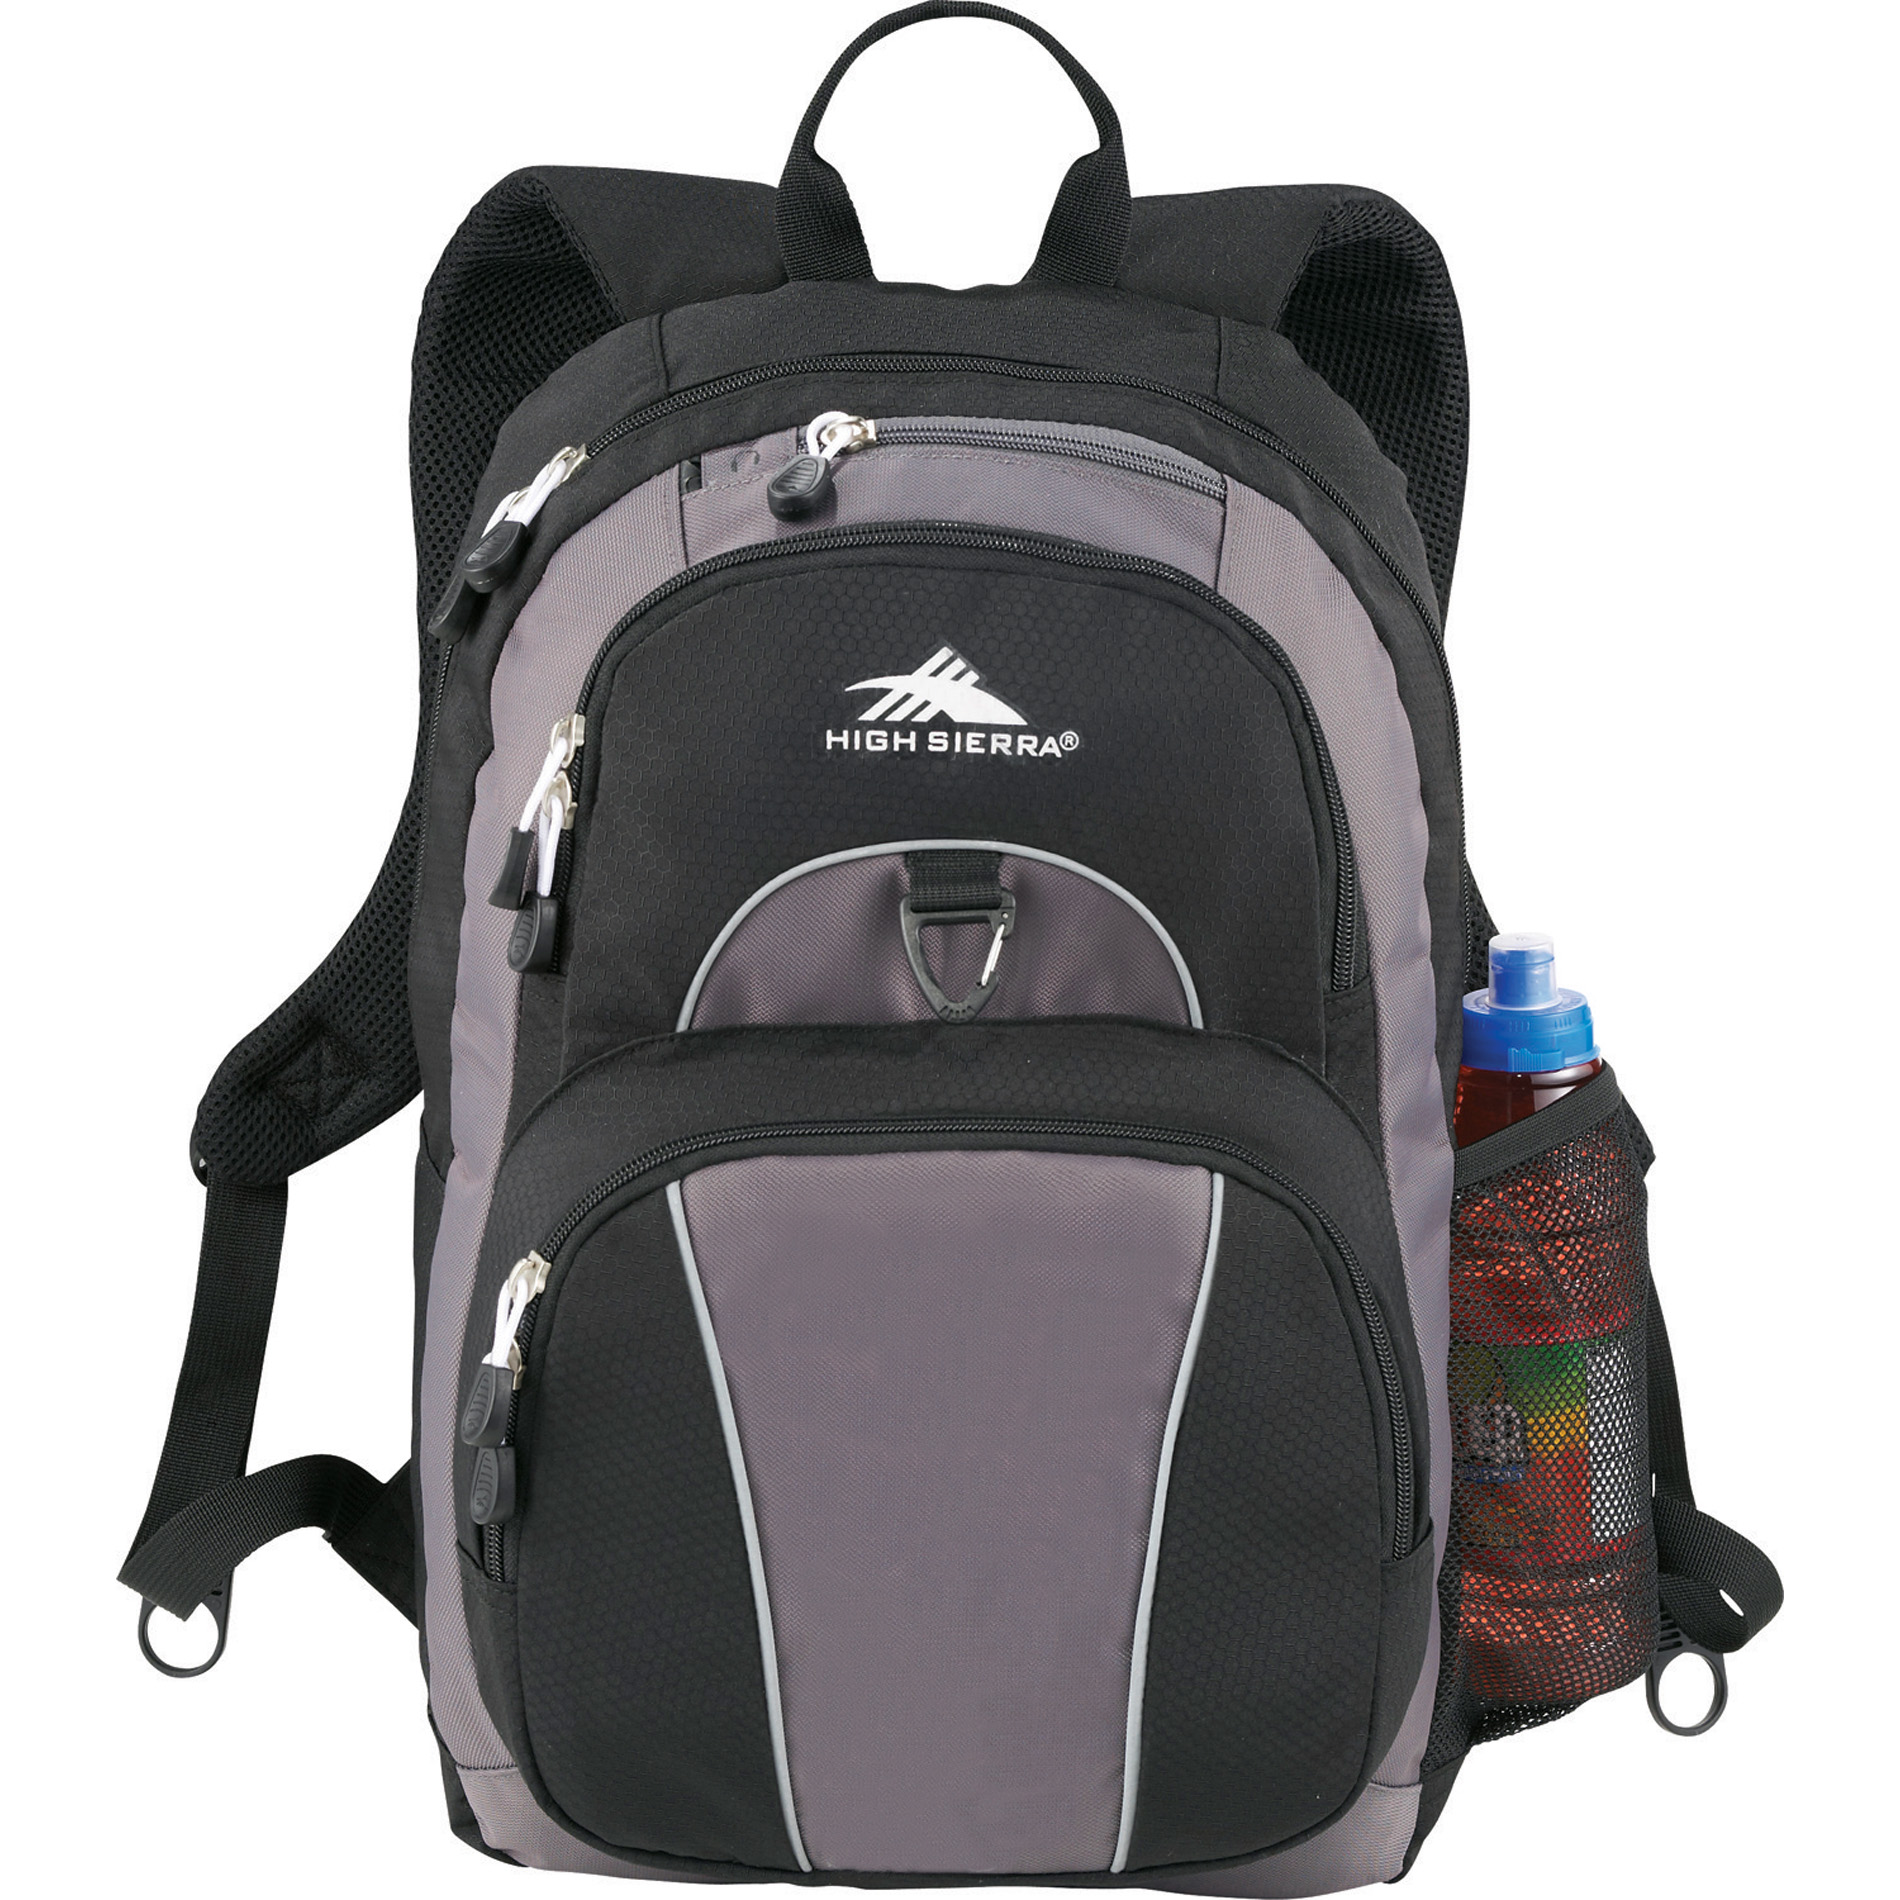 High Sierra 8051-18 - Enzo Backpack